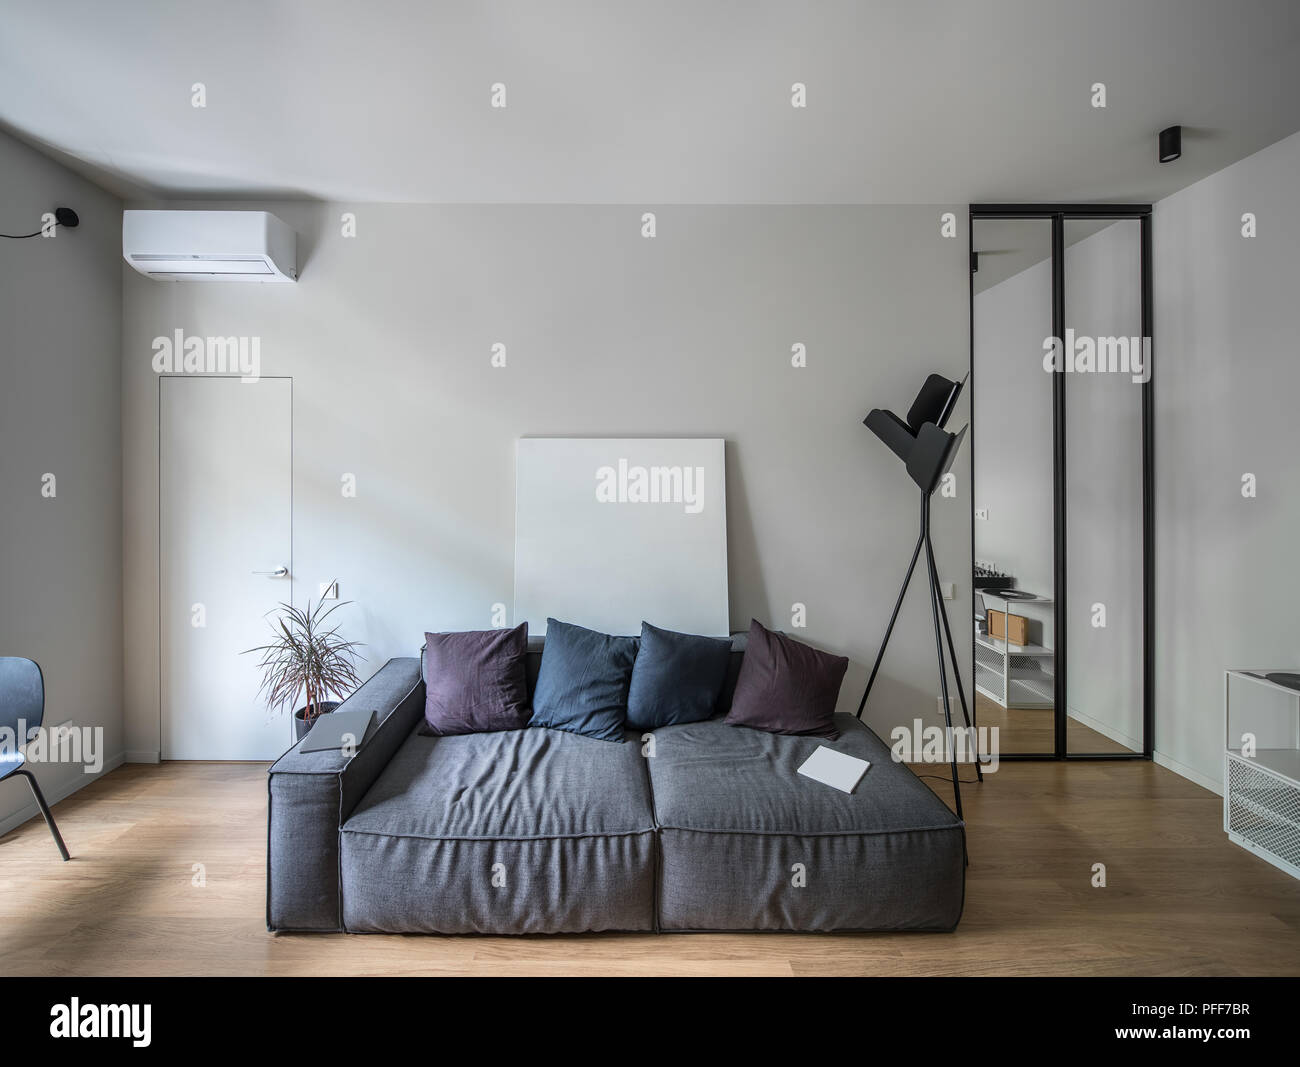 Room In A Modern Style With Light Walls And A Parquet On The Floor